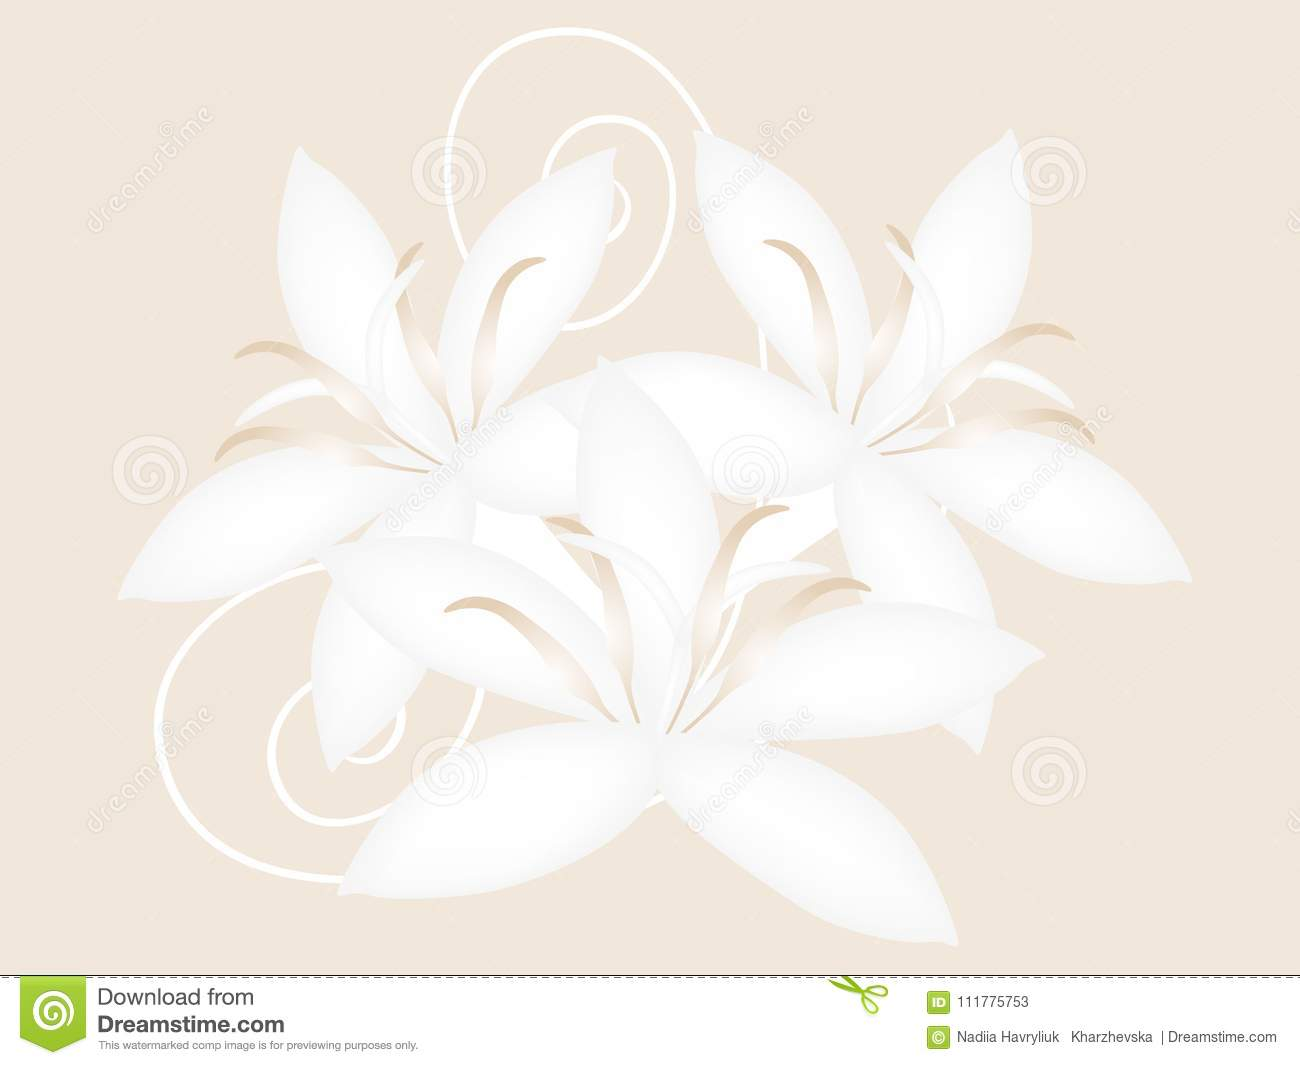 Coffee flowers isolated on a beige background, design.